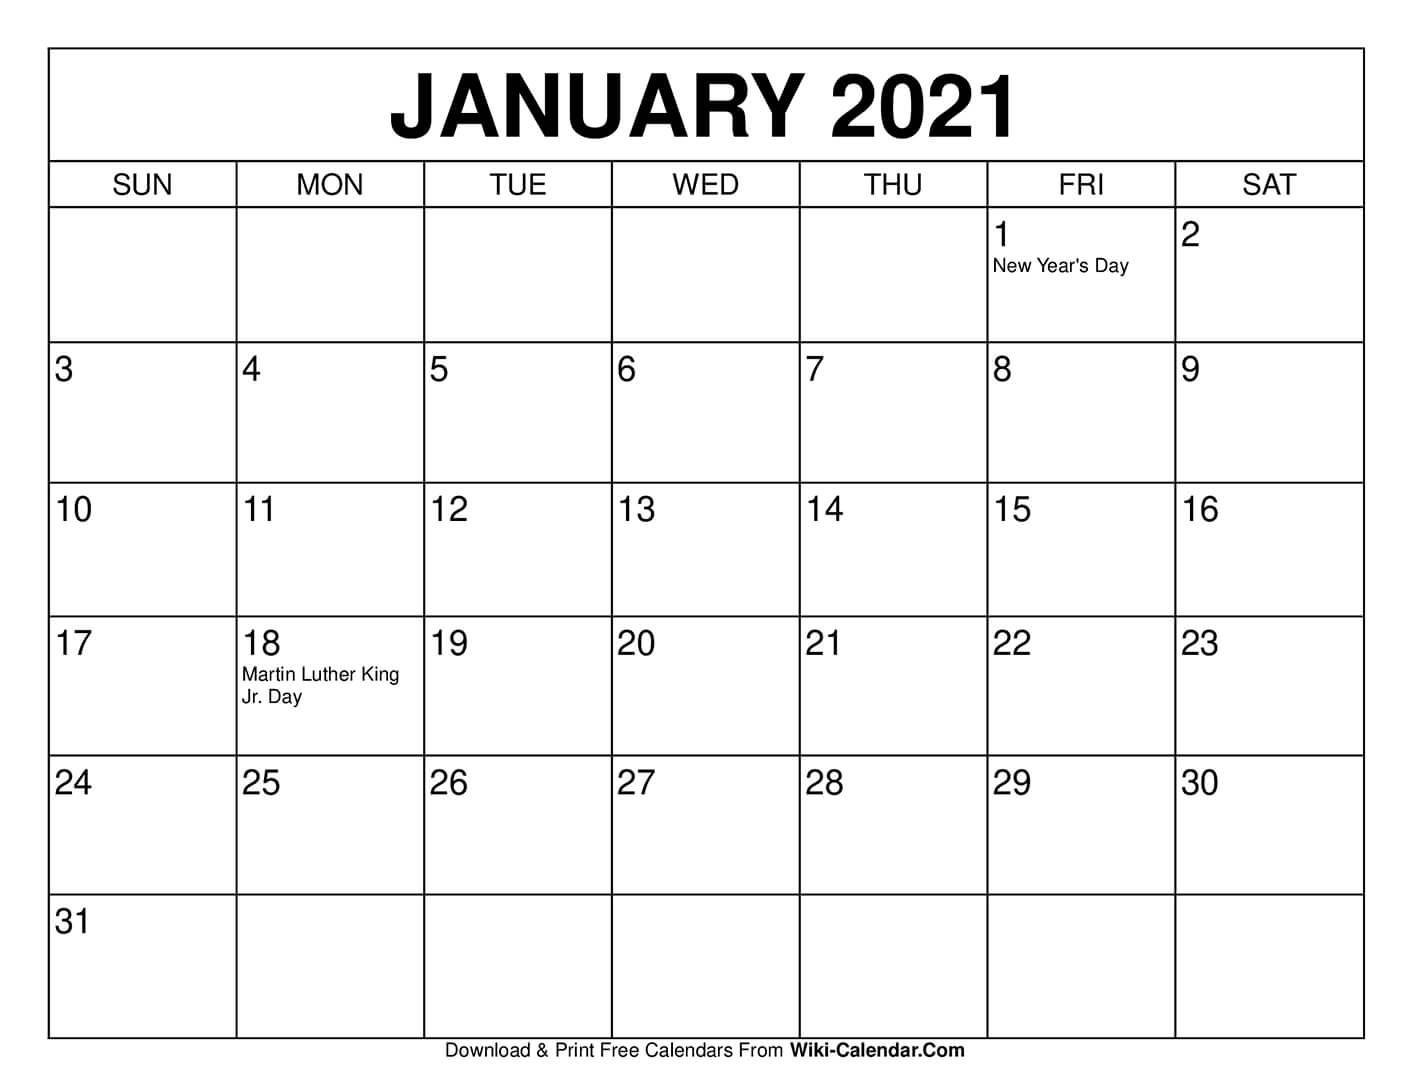 Free Printable January 2021 Calendars within Shift Schedule Jan 2021